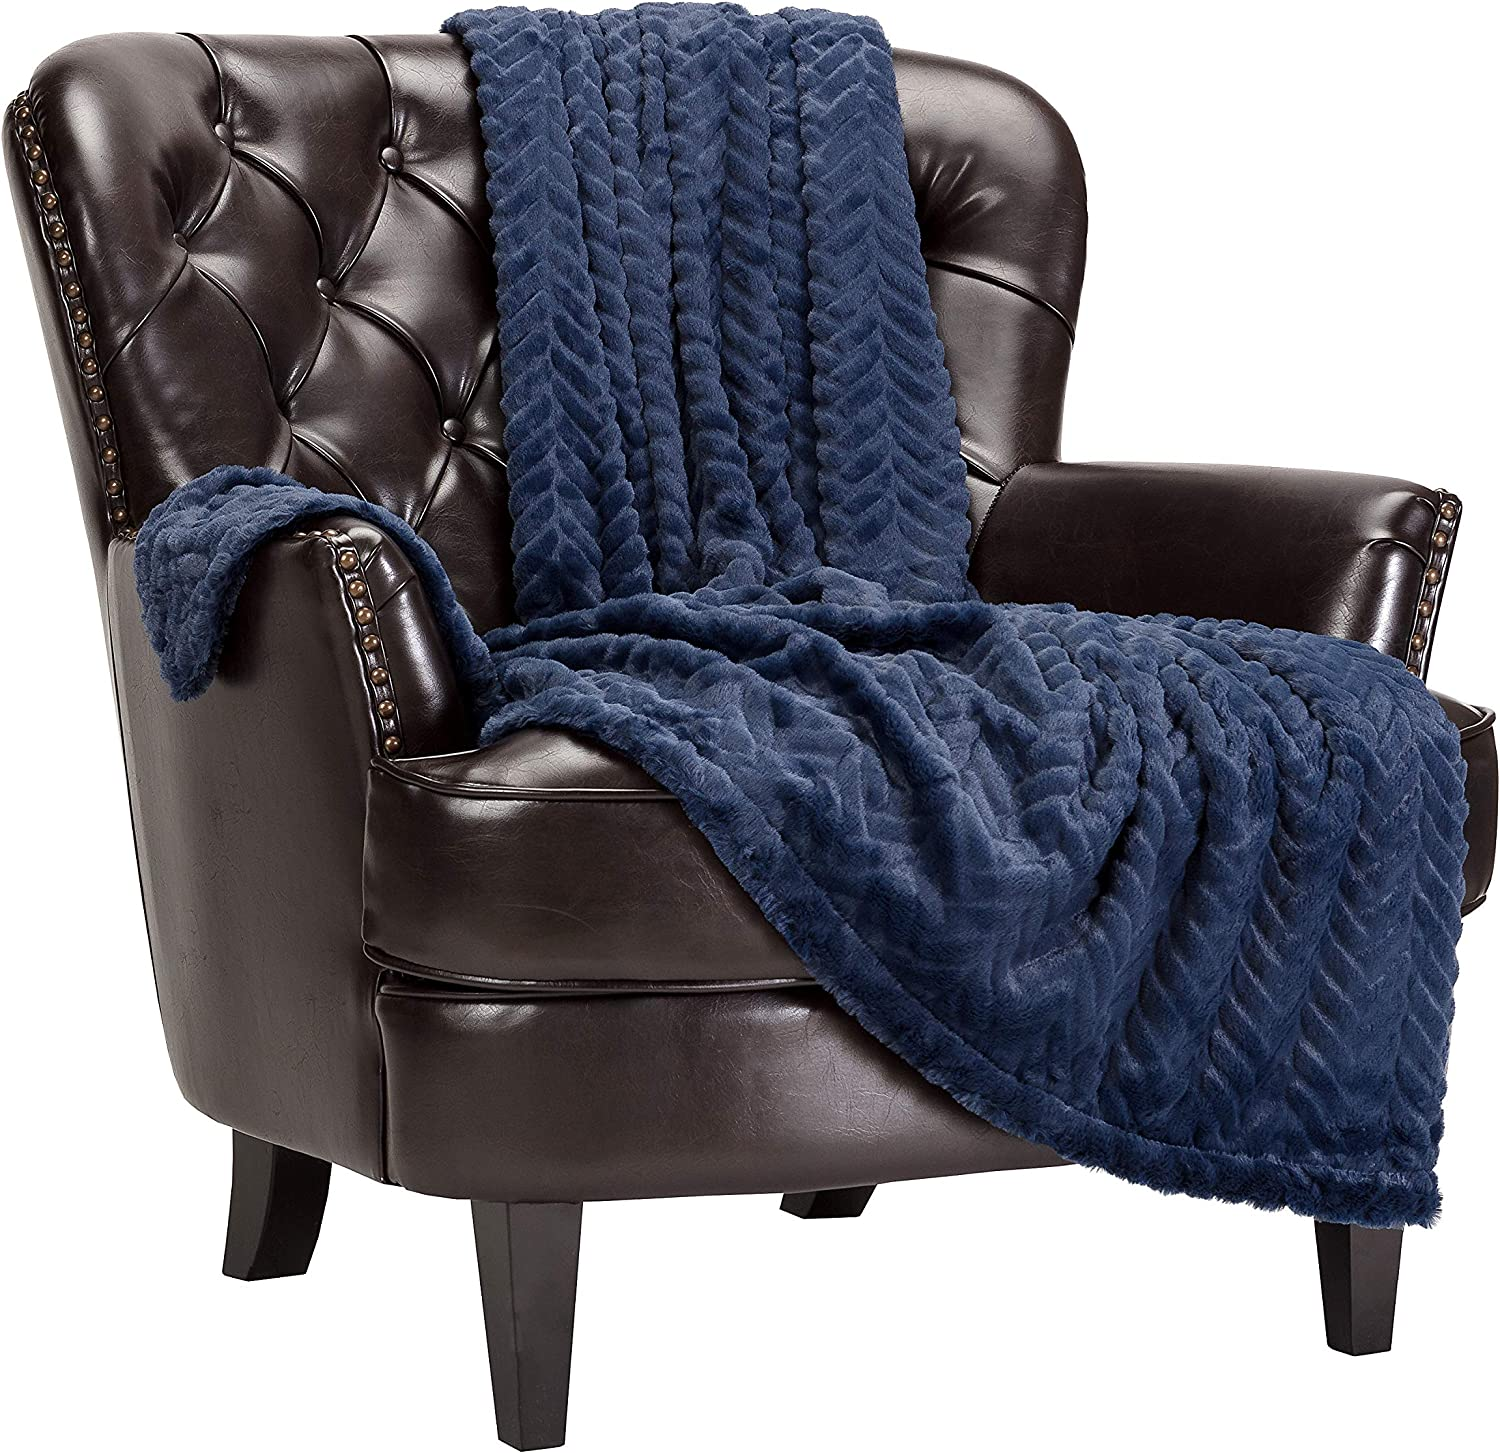 Chanasya Soft Faux Fur Embossed Throw Blanket - Solid Color Fuzzy Double Layered Super Soft Cozy Plush Elegant Throw - for Bed Couch and Living Room Décor (50x65 Inches) Blue Blanket